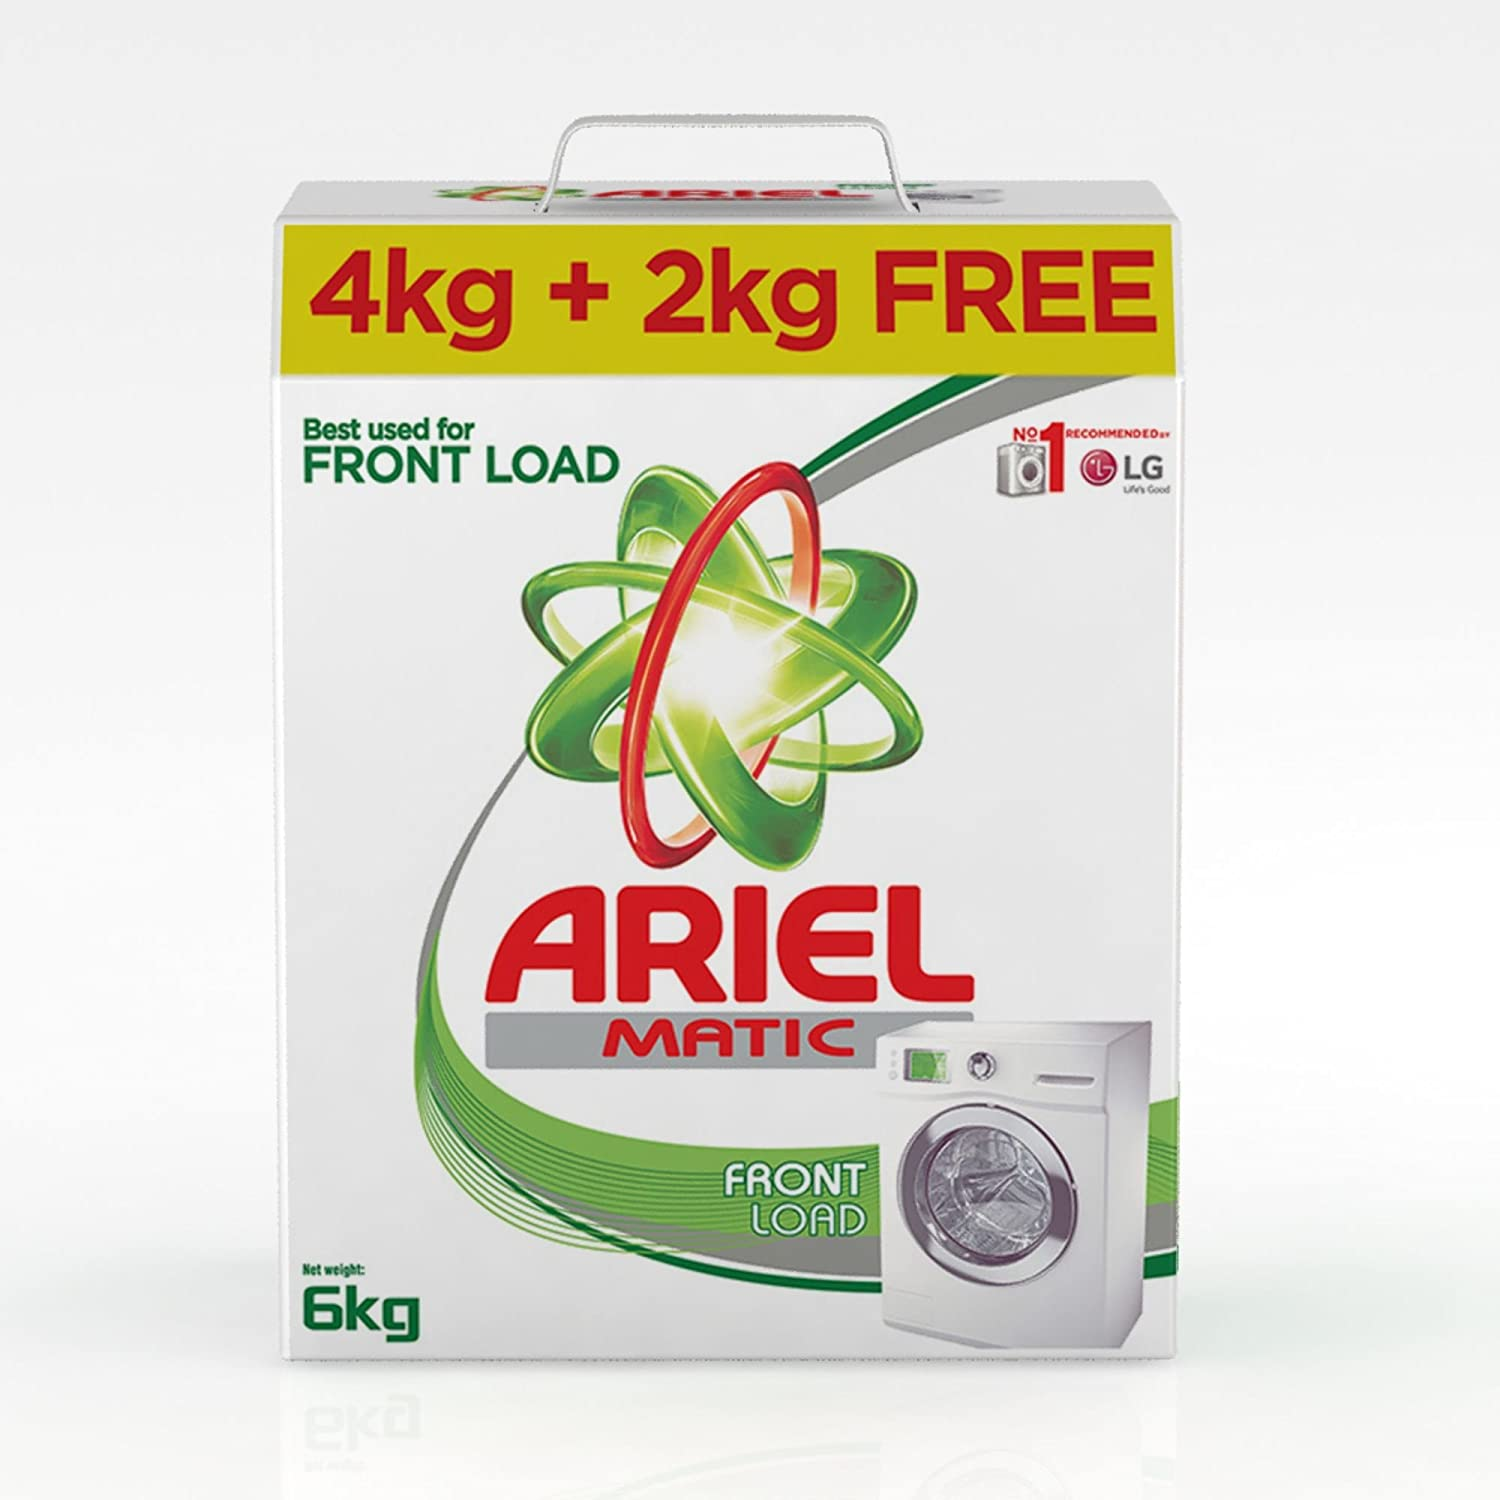 Best Top Loading Washing Machine >> FREE 2 kg Ariel Matic Front Load Detergent Washing Powder with 4 kg pack | Free Stuff, Contests ...